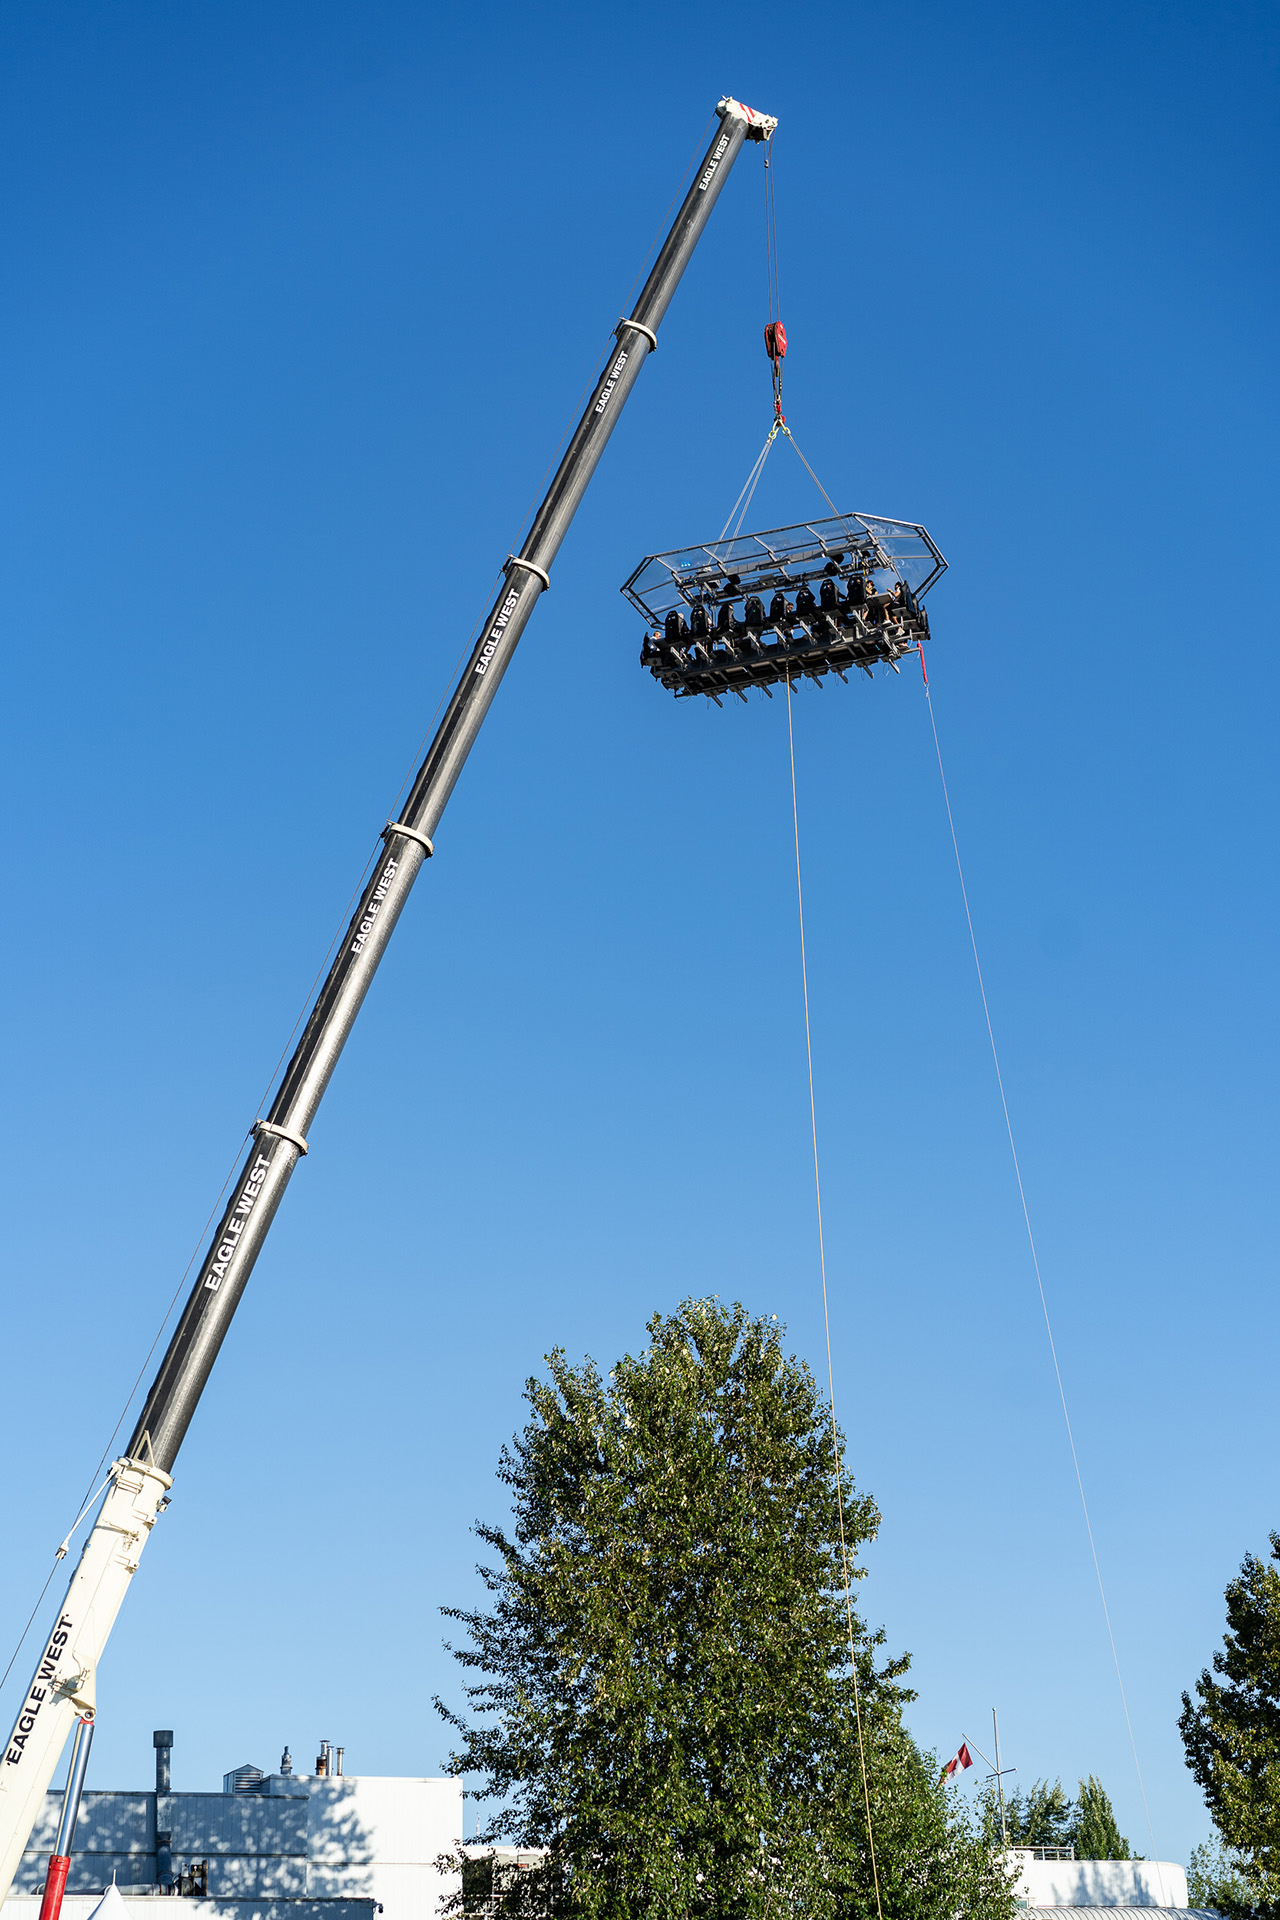 A 200-ft crane takes you 150-ft into the sky to dine with the beautiful sunset as your backdrop.